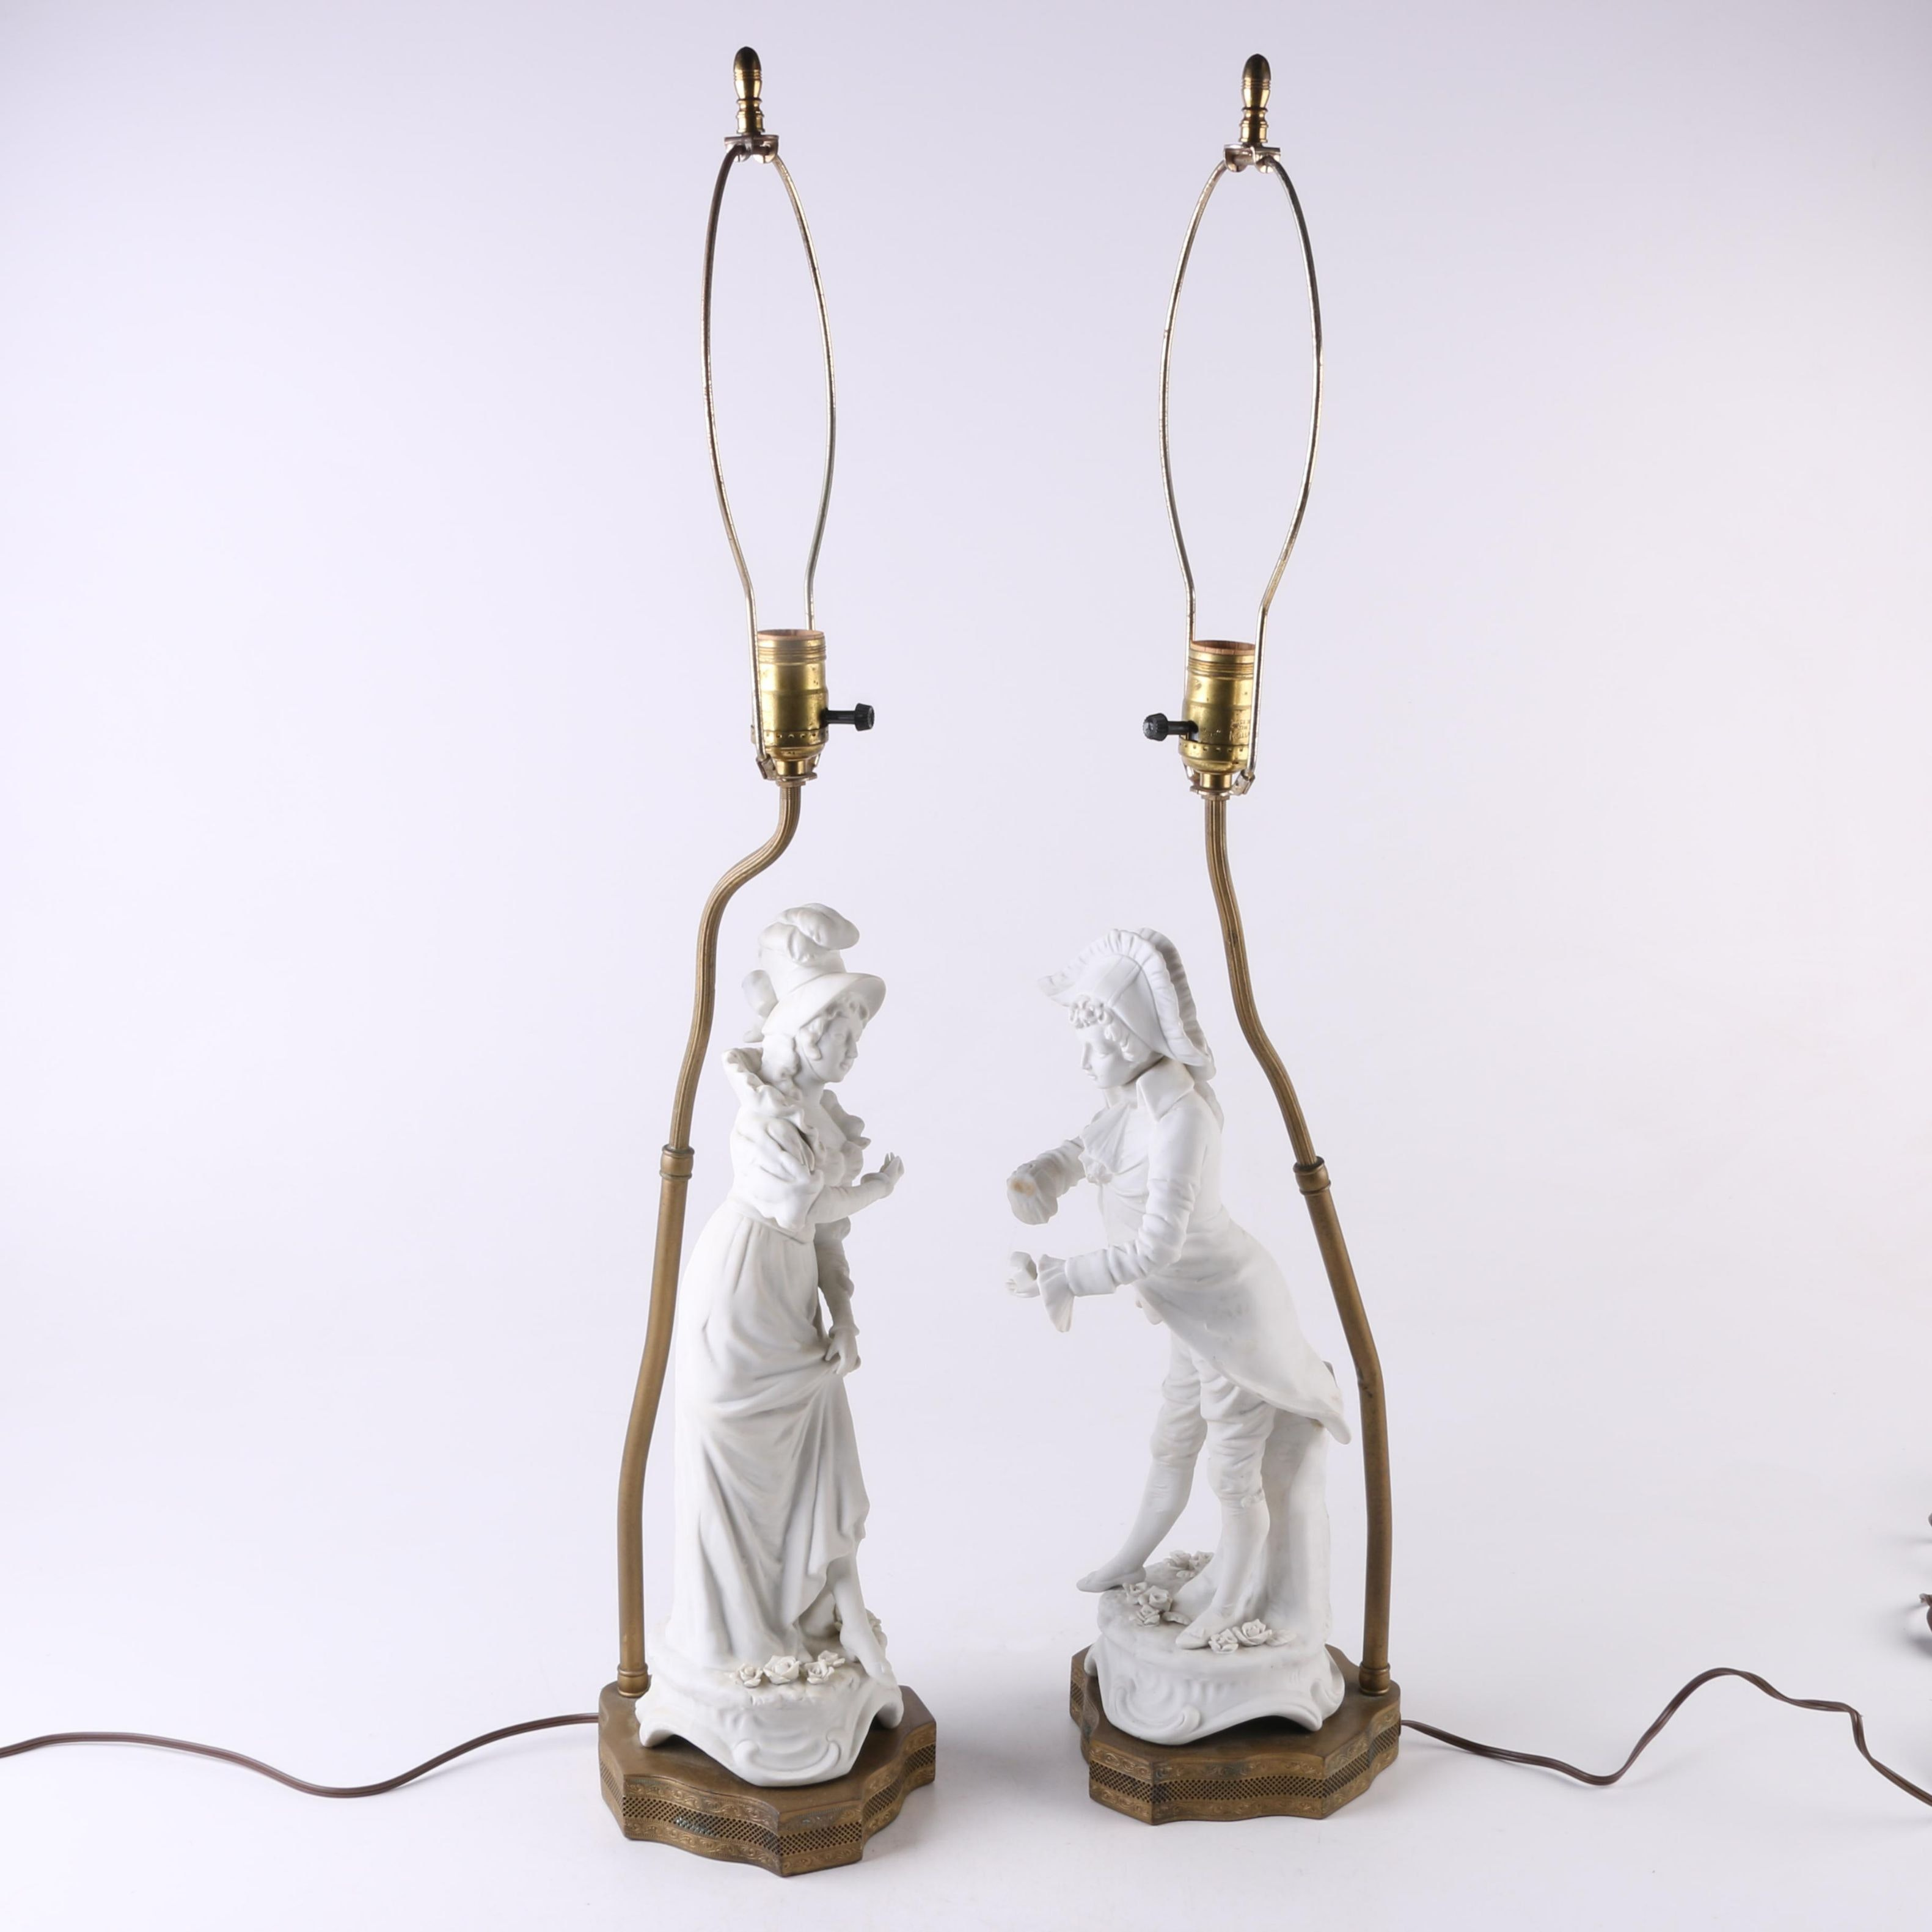 French Style Ceramic Figural Table Lamps with Brass Toned Reticulated Bases